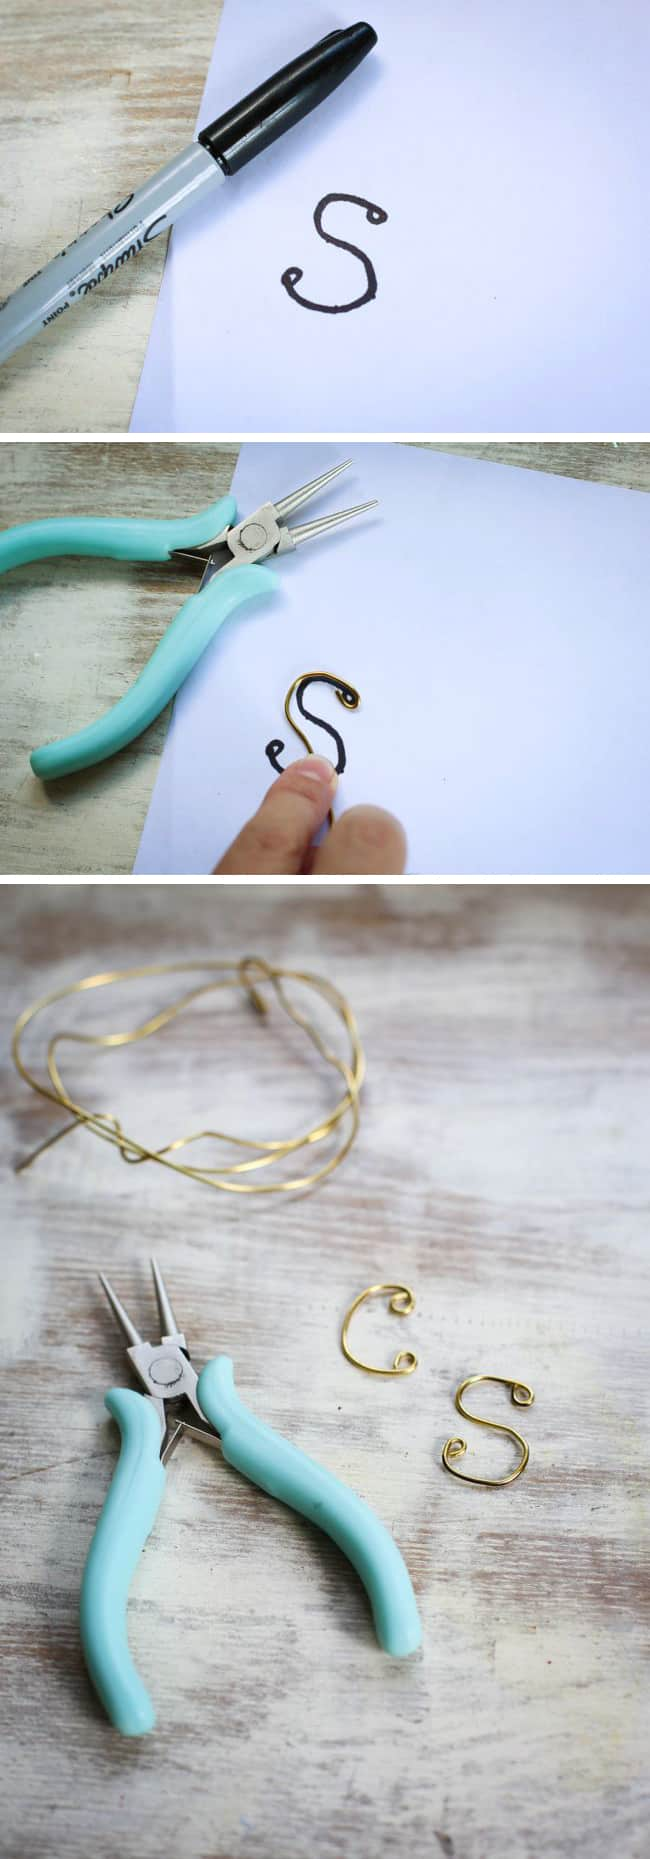 How to make a wire letter